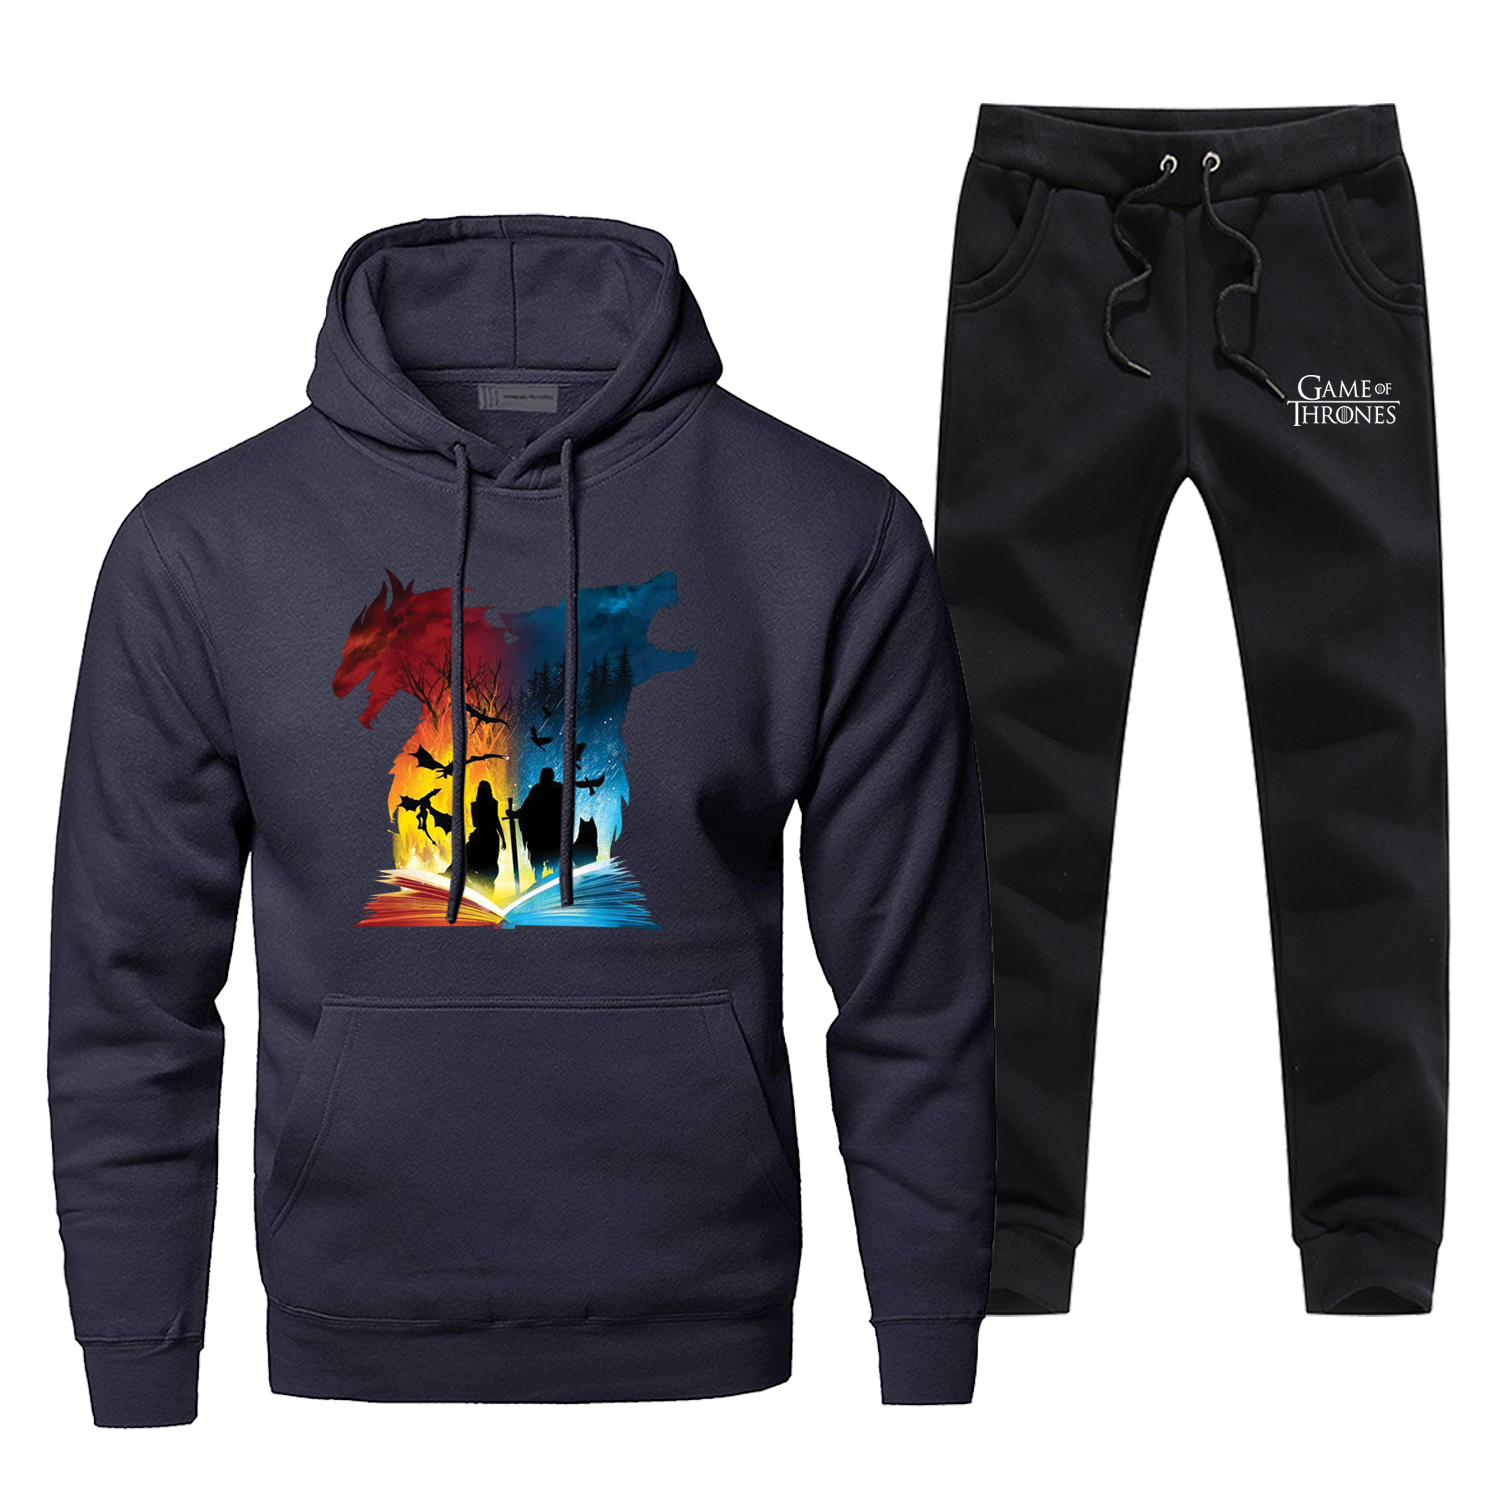 Game Of Thrones TV Show Men's Sports Suit Casual A Song Of Ice And Fire Fleece Pants Sweatshirts Warm Men's Full Suit Tracksuit